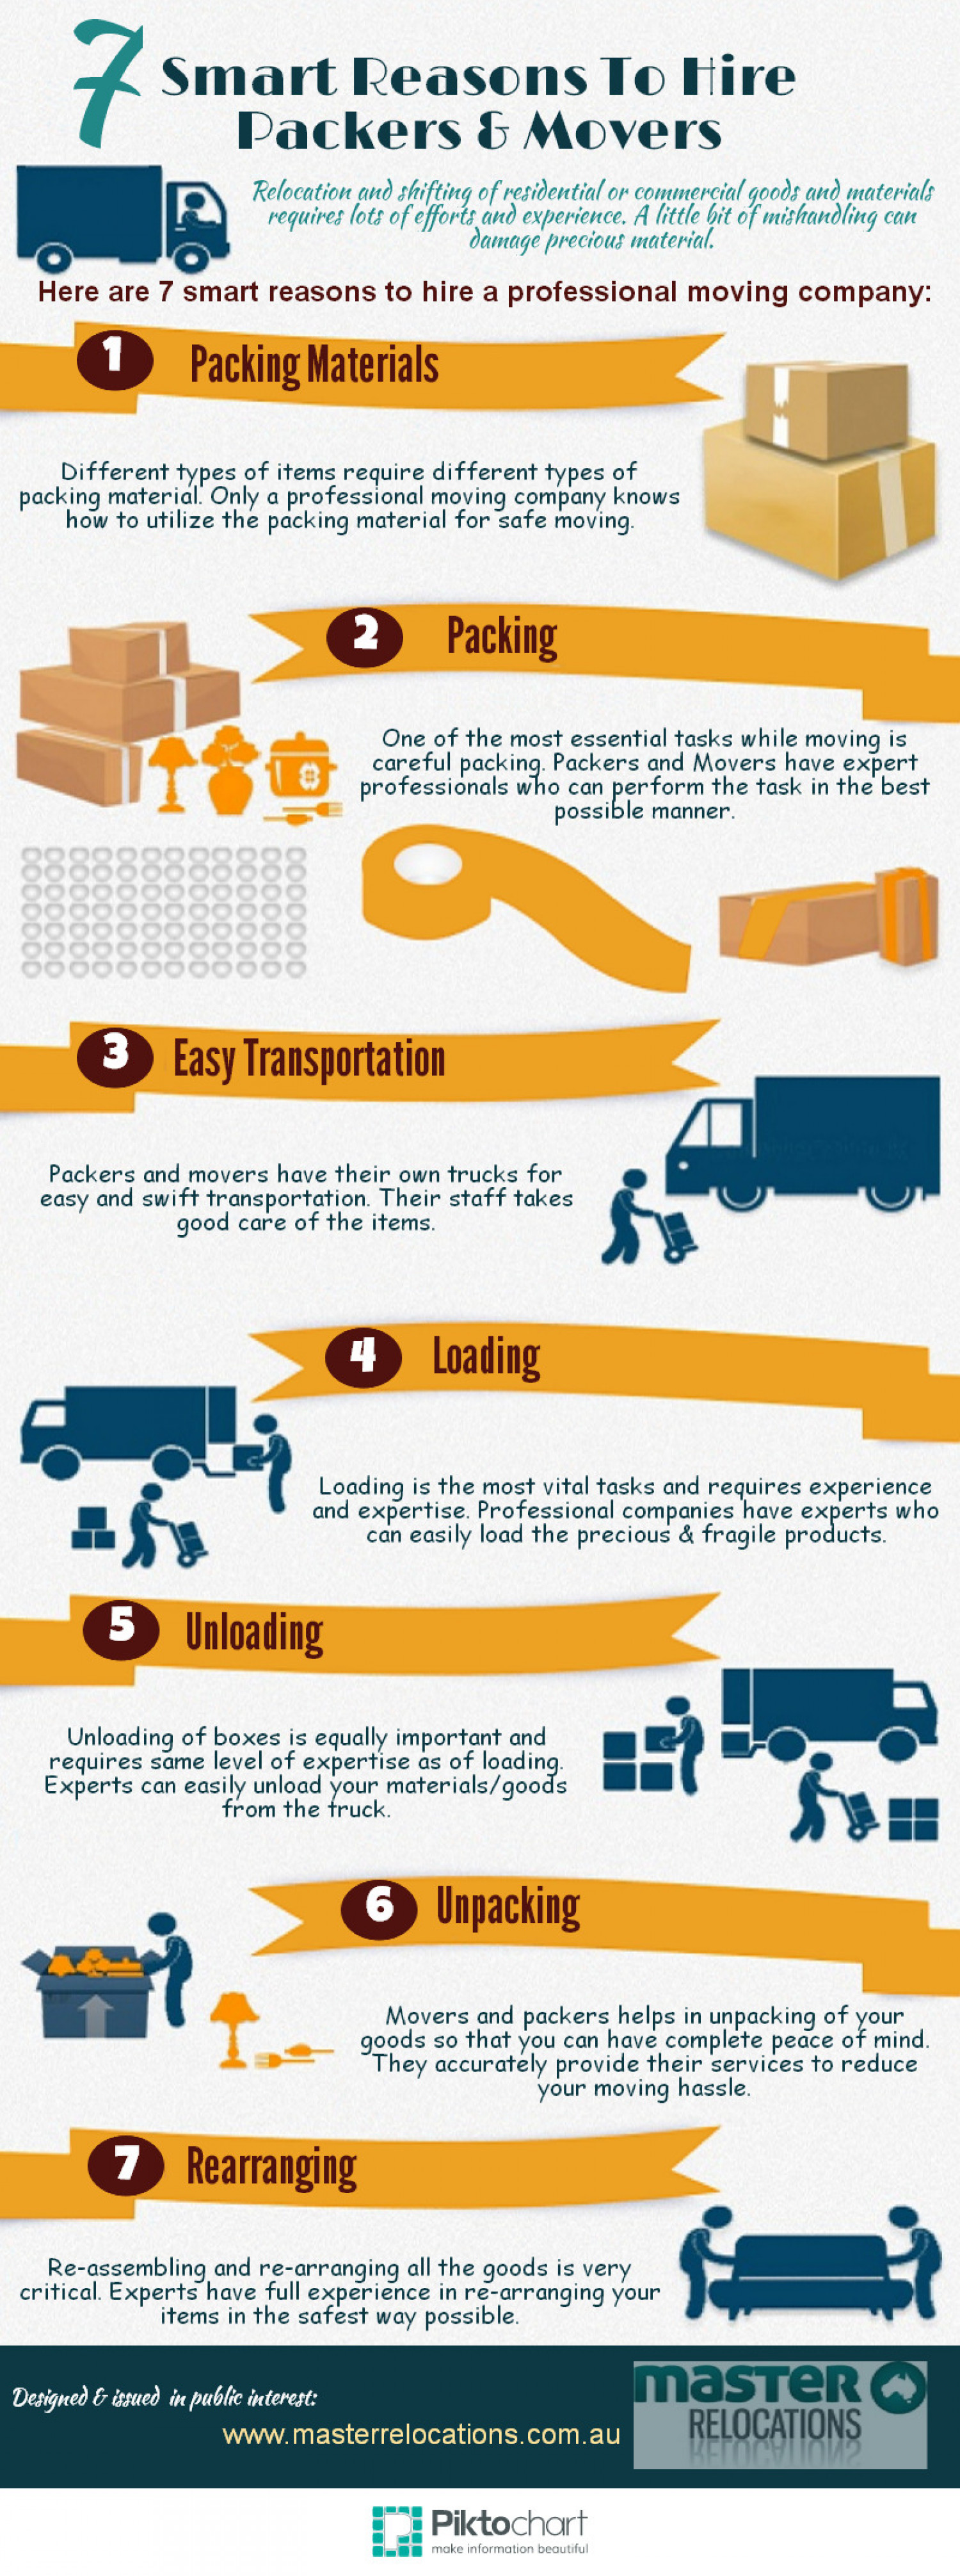 7-smart-reasons-to-hire-packers--movers_